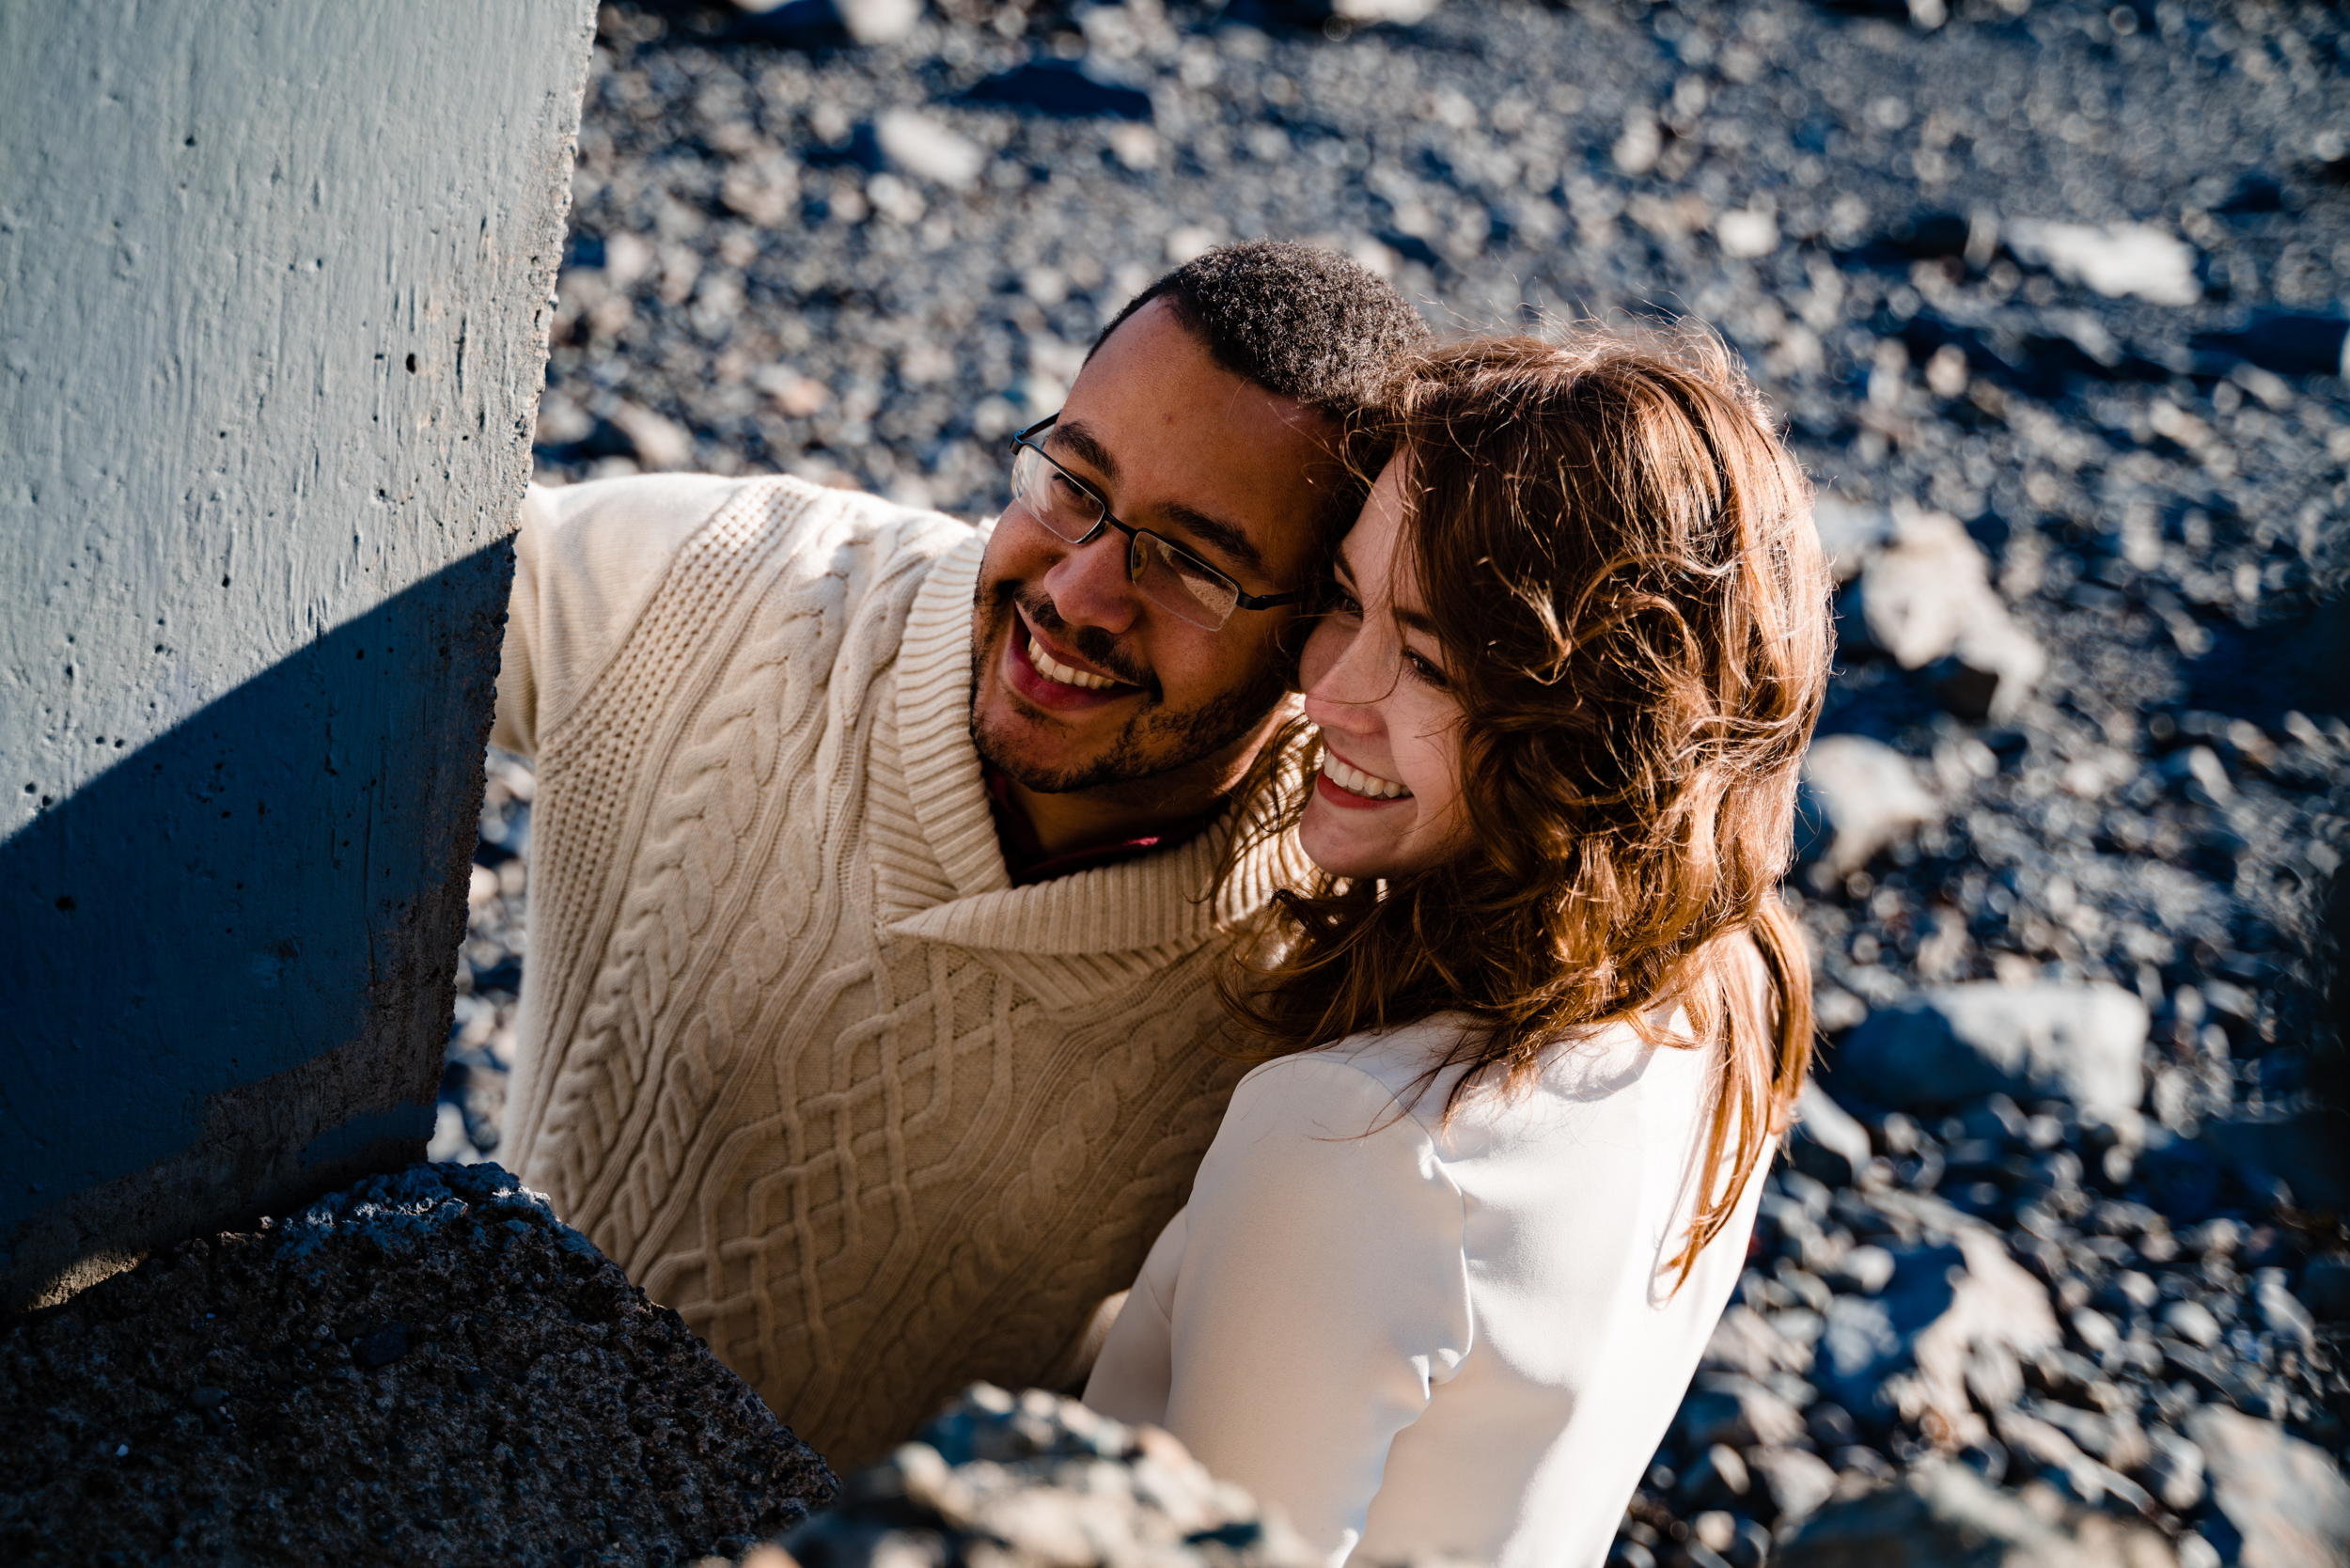 Wedding-halifax-engagement-nova-scotia-ottawa-ontario-pointpleasantpark-Fall-Autumn (36 of 53).jpg